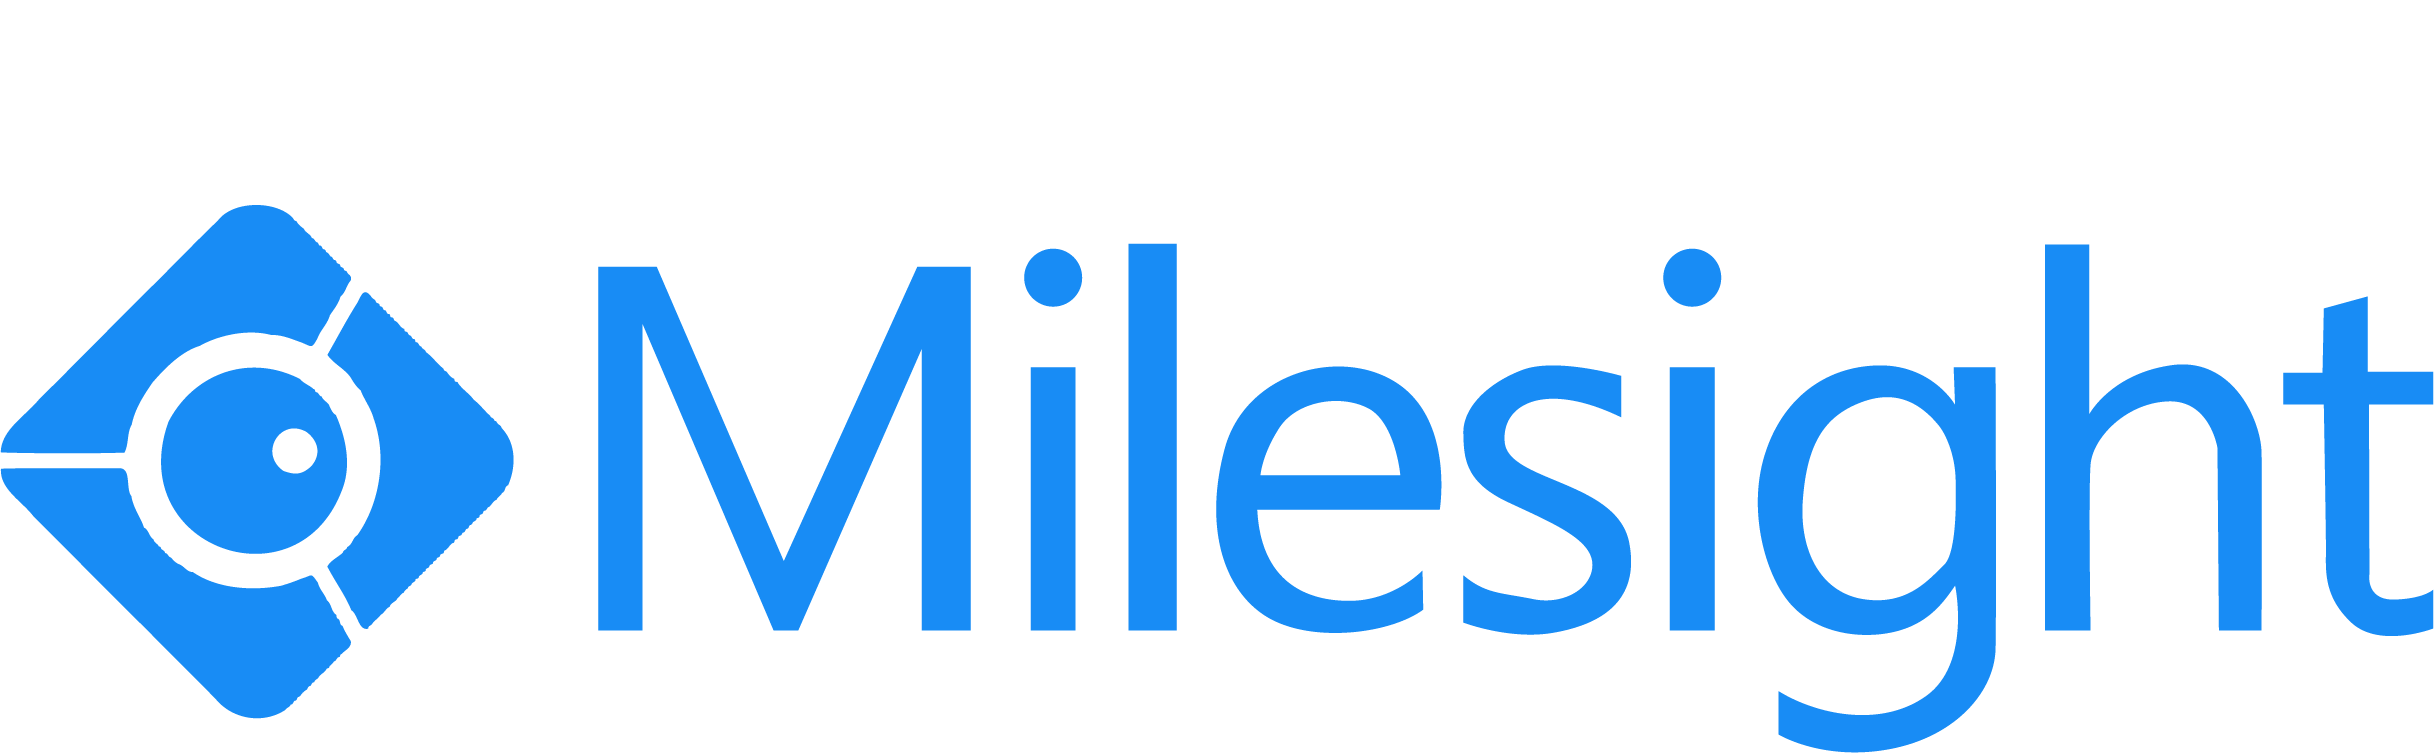 Our Technology Partner is Mile sight